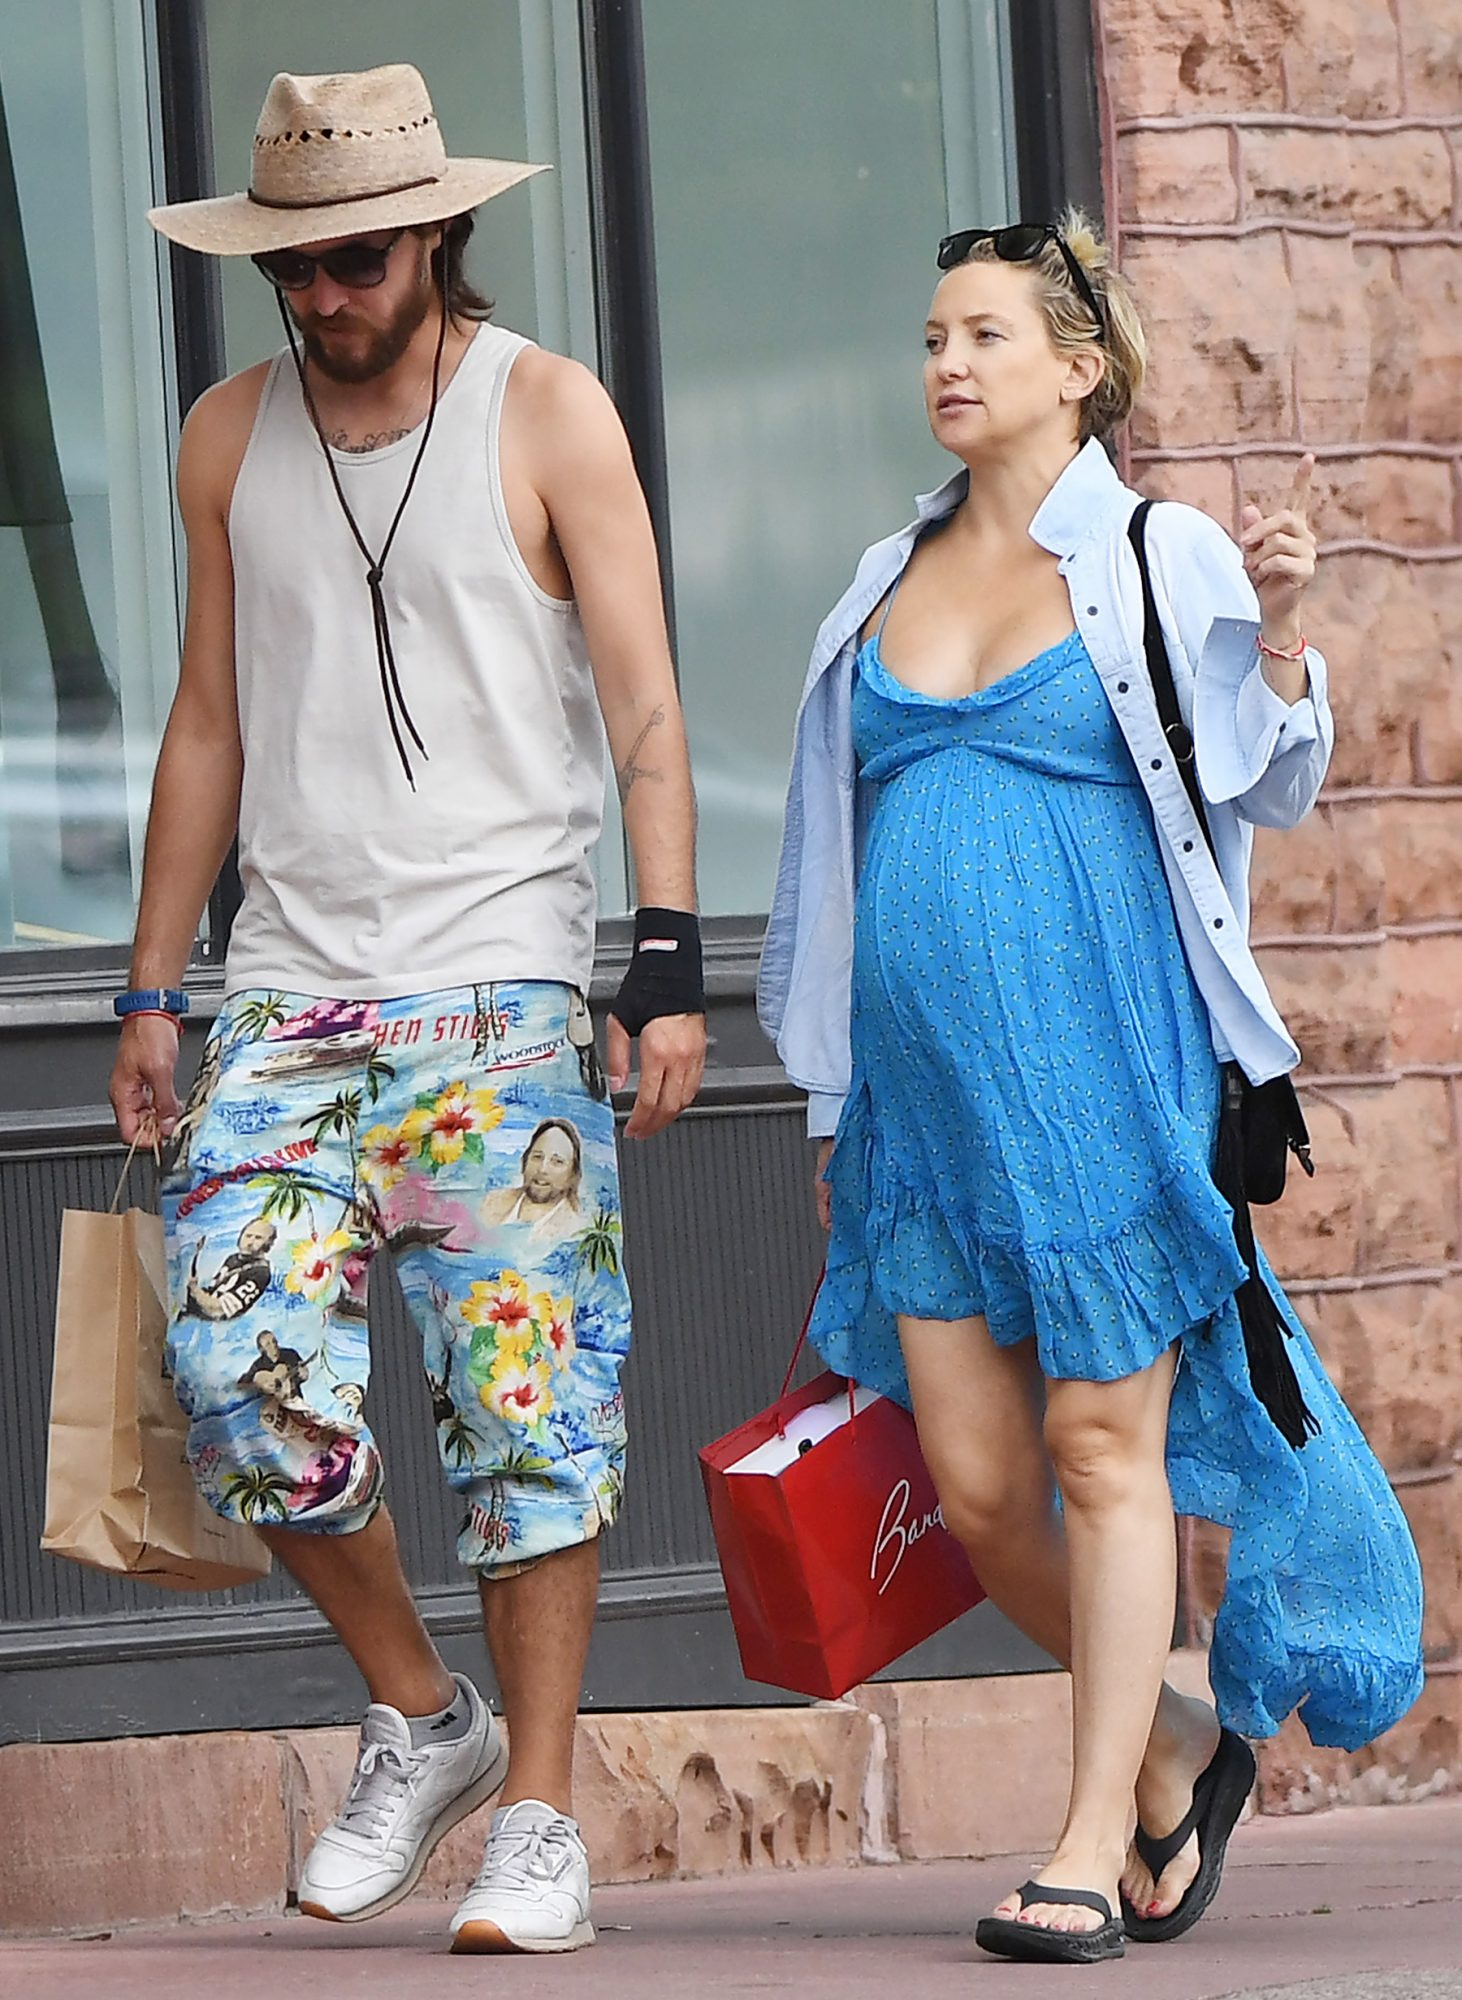 EXCLUSIVE: Kate Hudson shows off her huge baby bump while shopping in Aspen with her boyfriend Danny